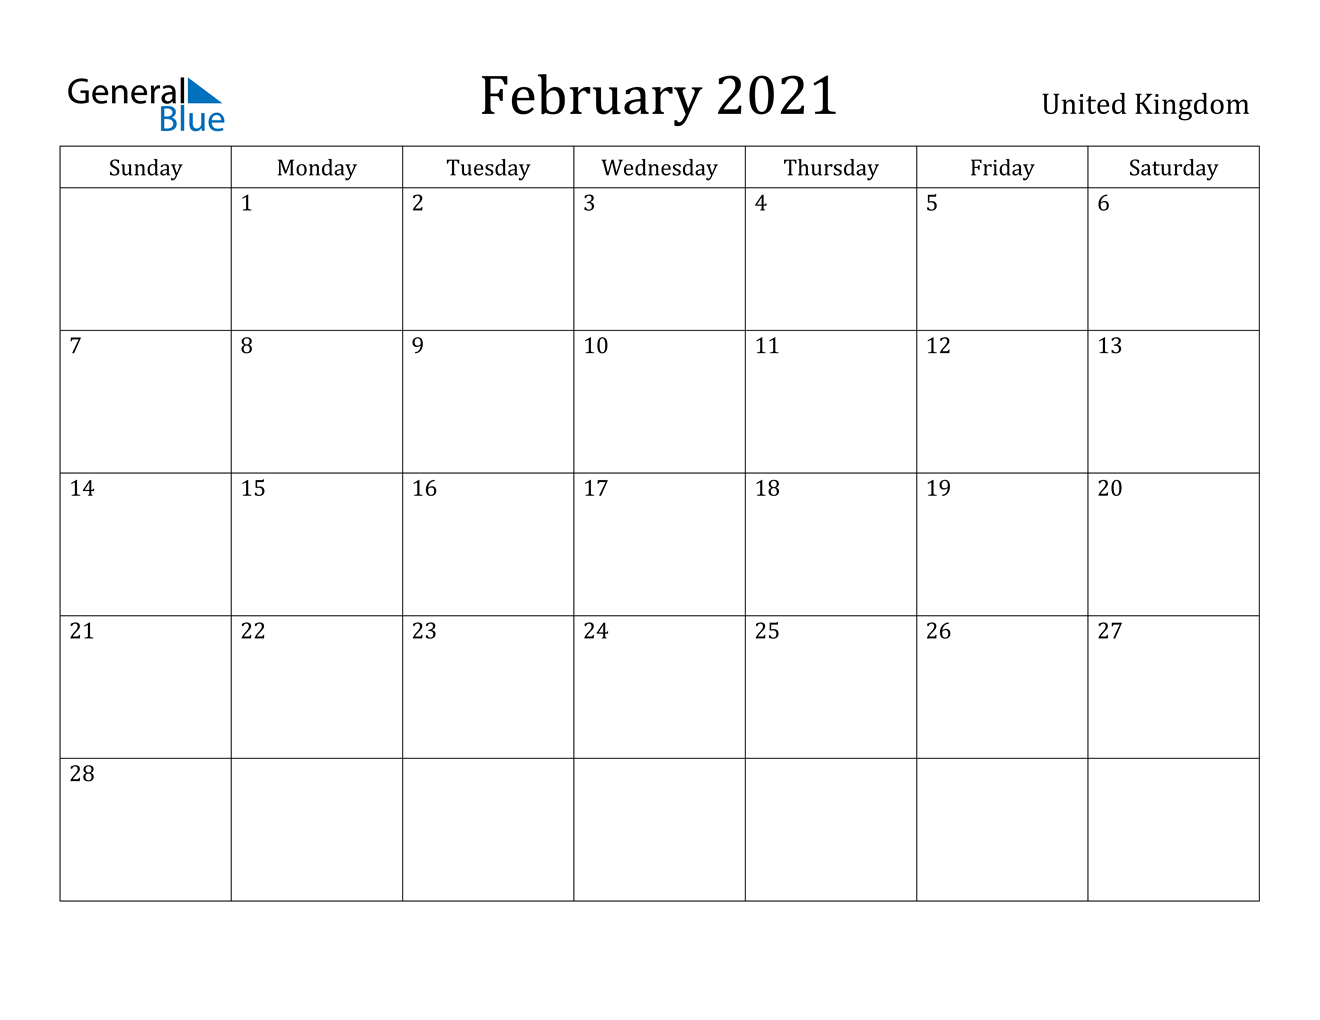 February 2021 Calendar United Kingdom